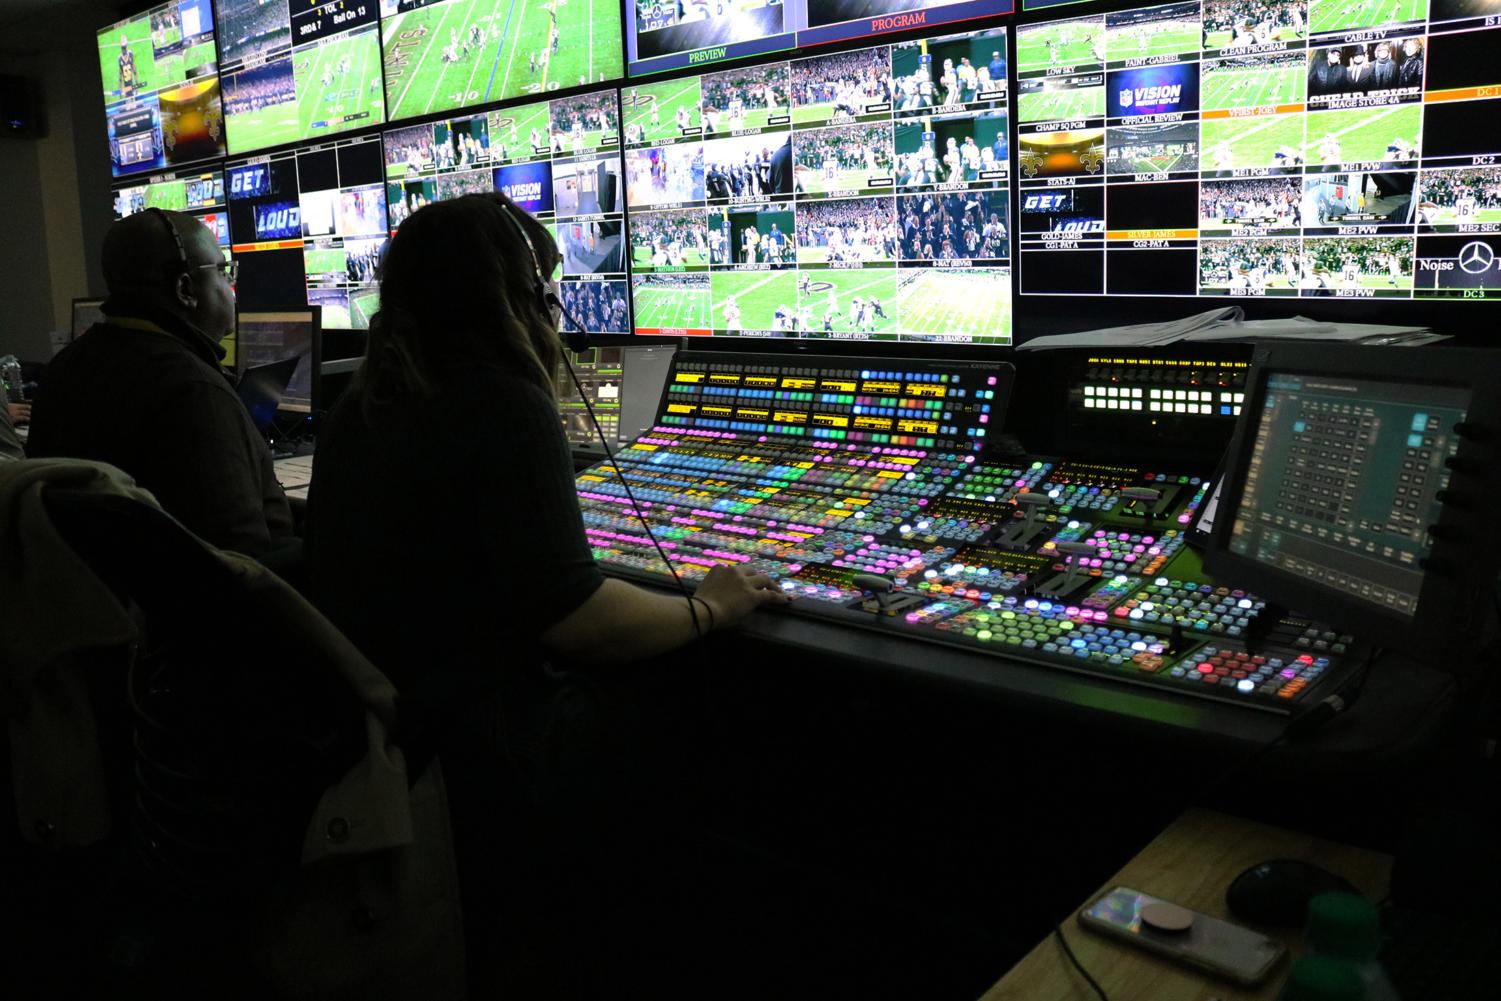 The director of the New Orleans Saints in-stadium production sits in front of her switcher board. Photo credit: Albert Dupont